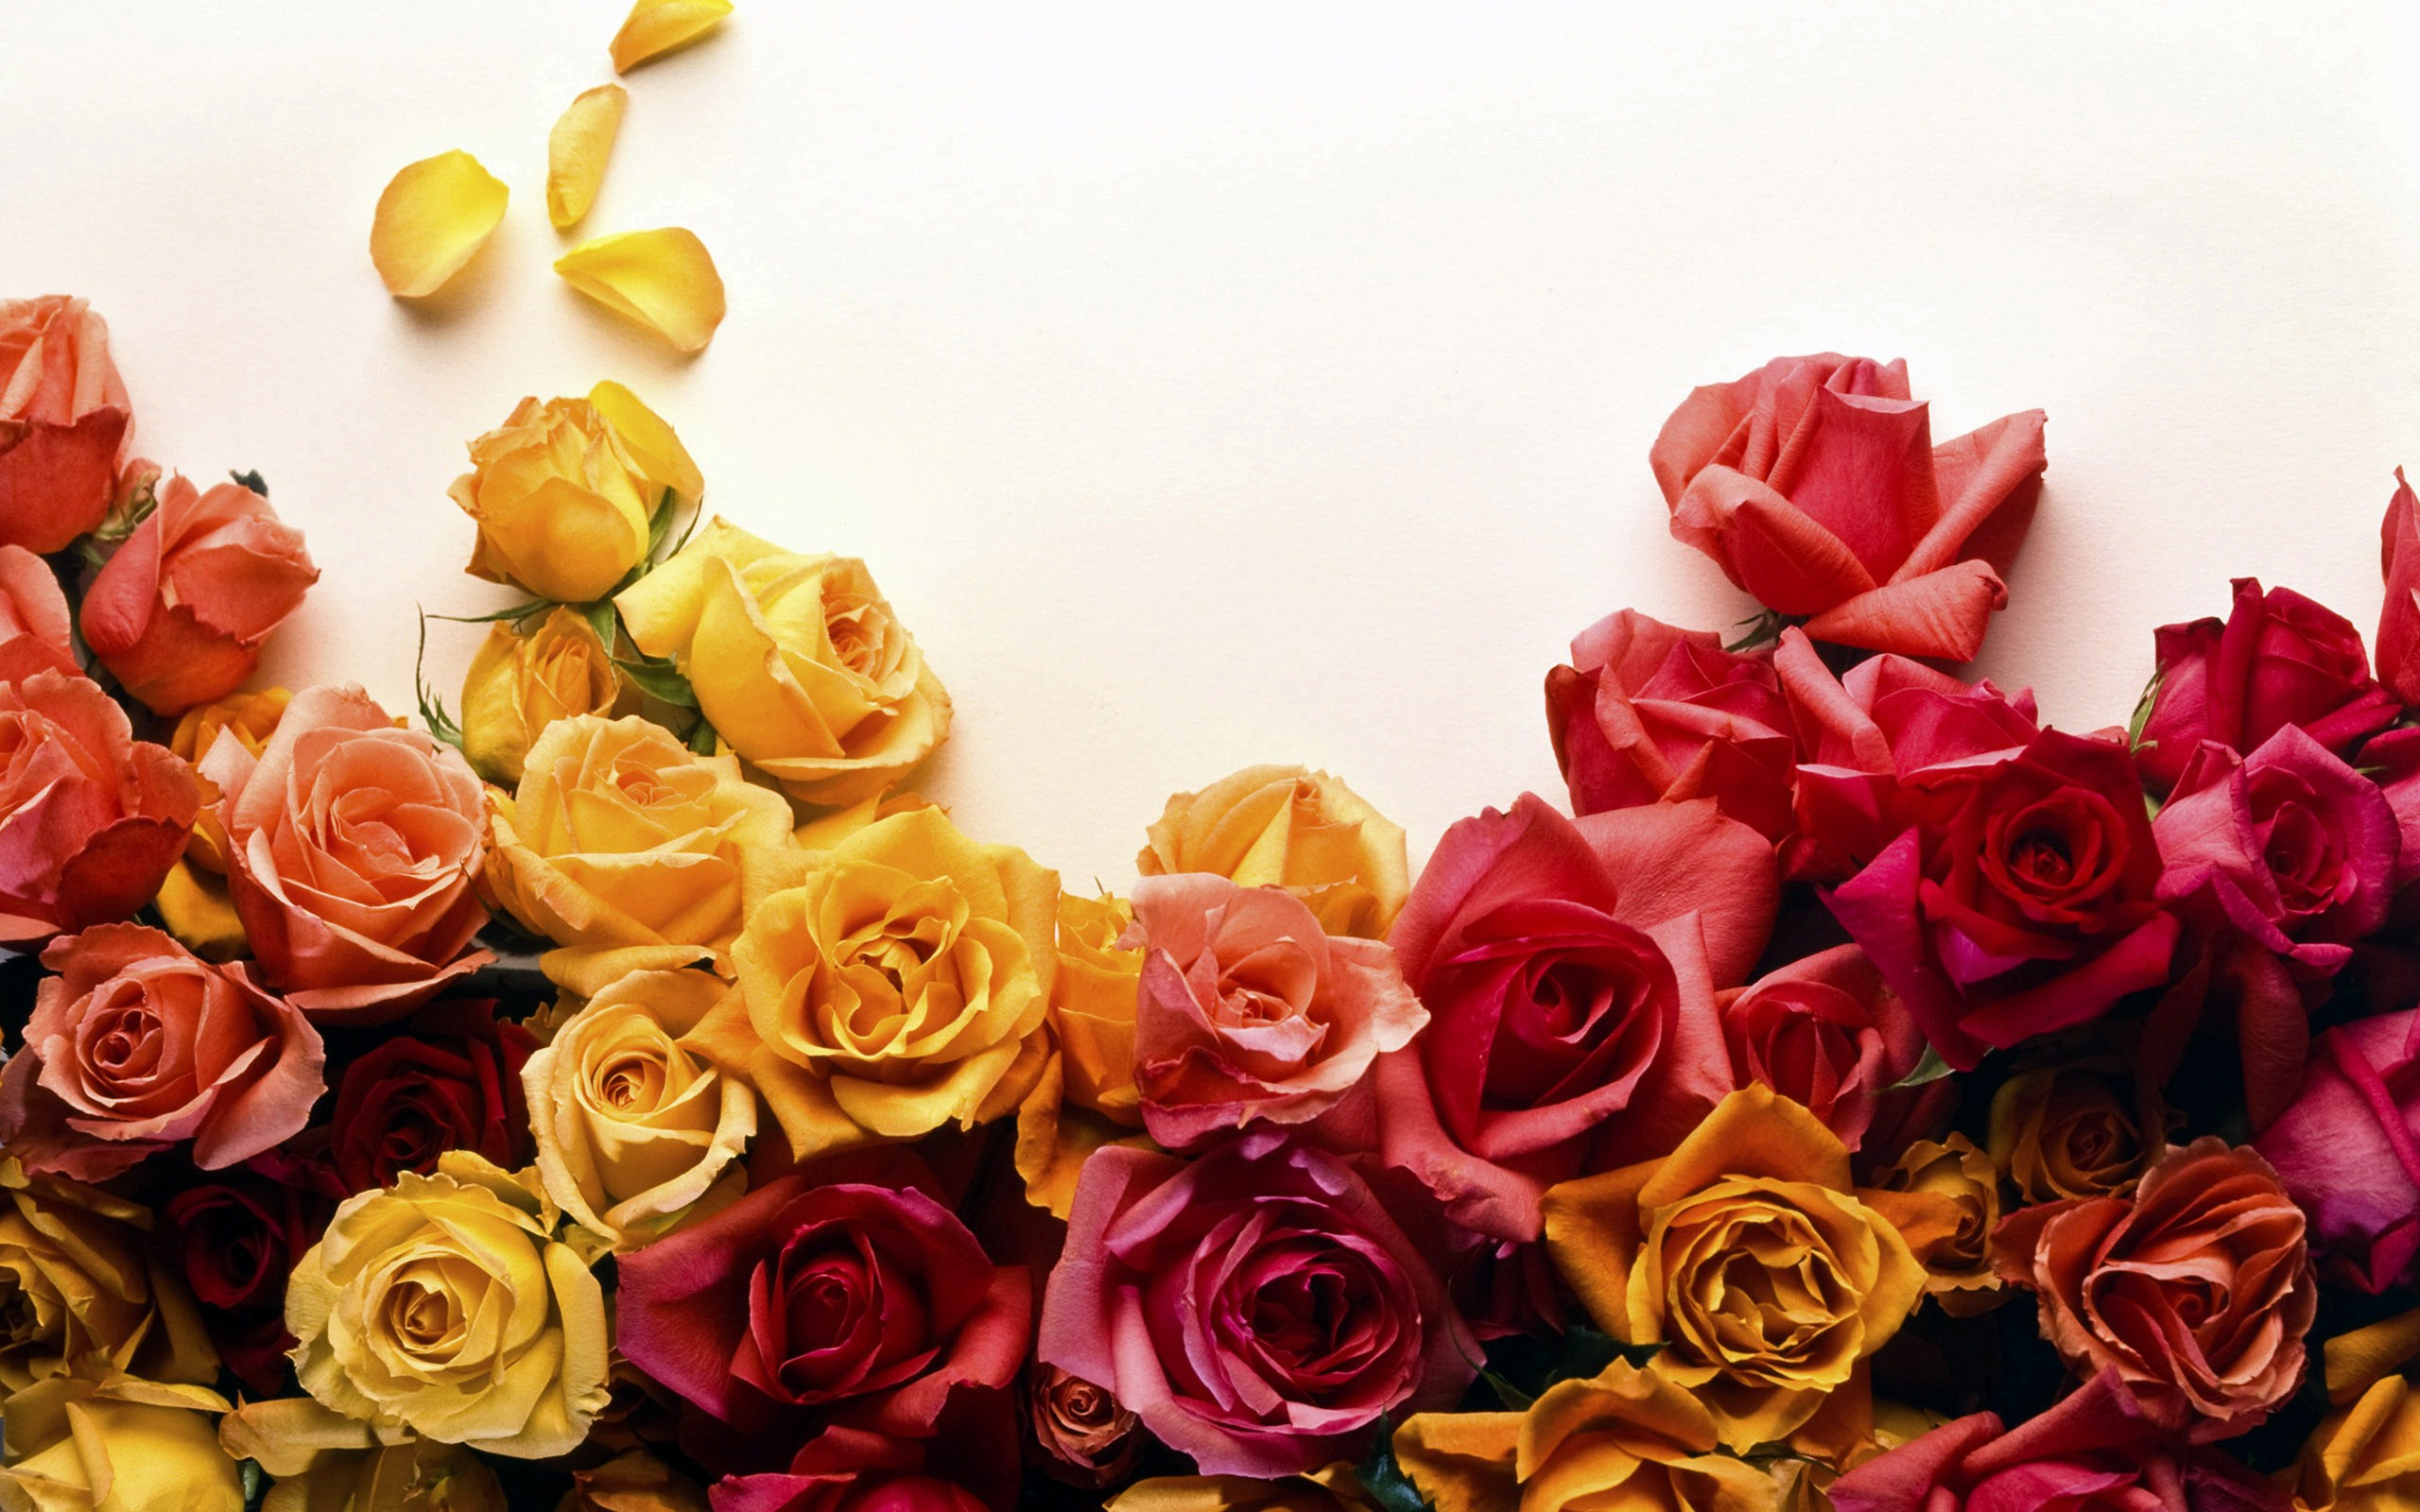 Beauty wallpaper free wallpaper world part 3 for Pics of colourful roses